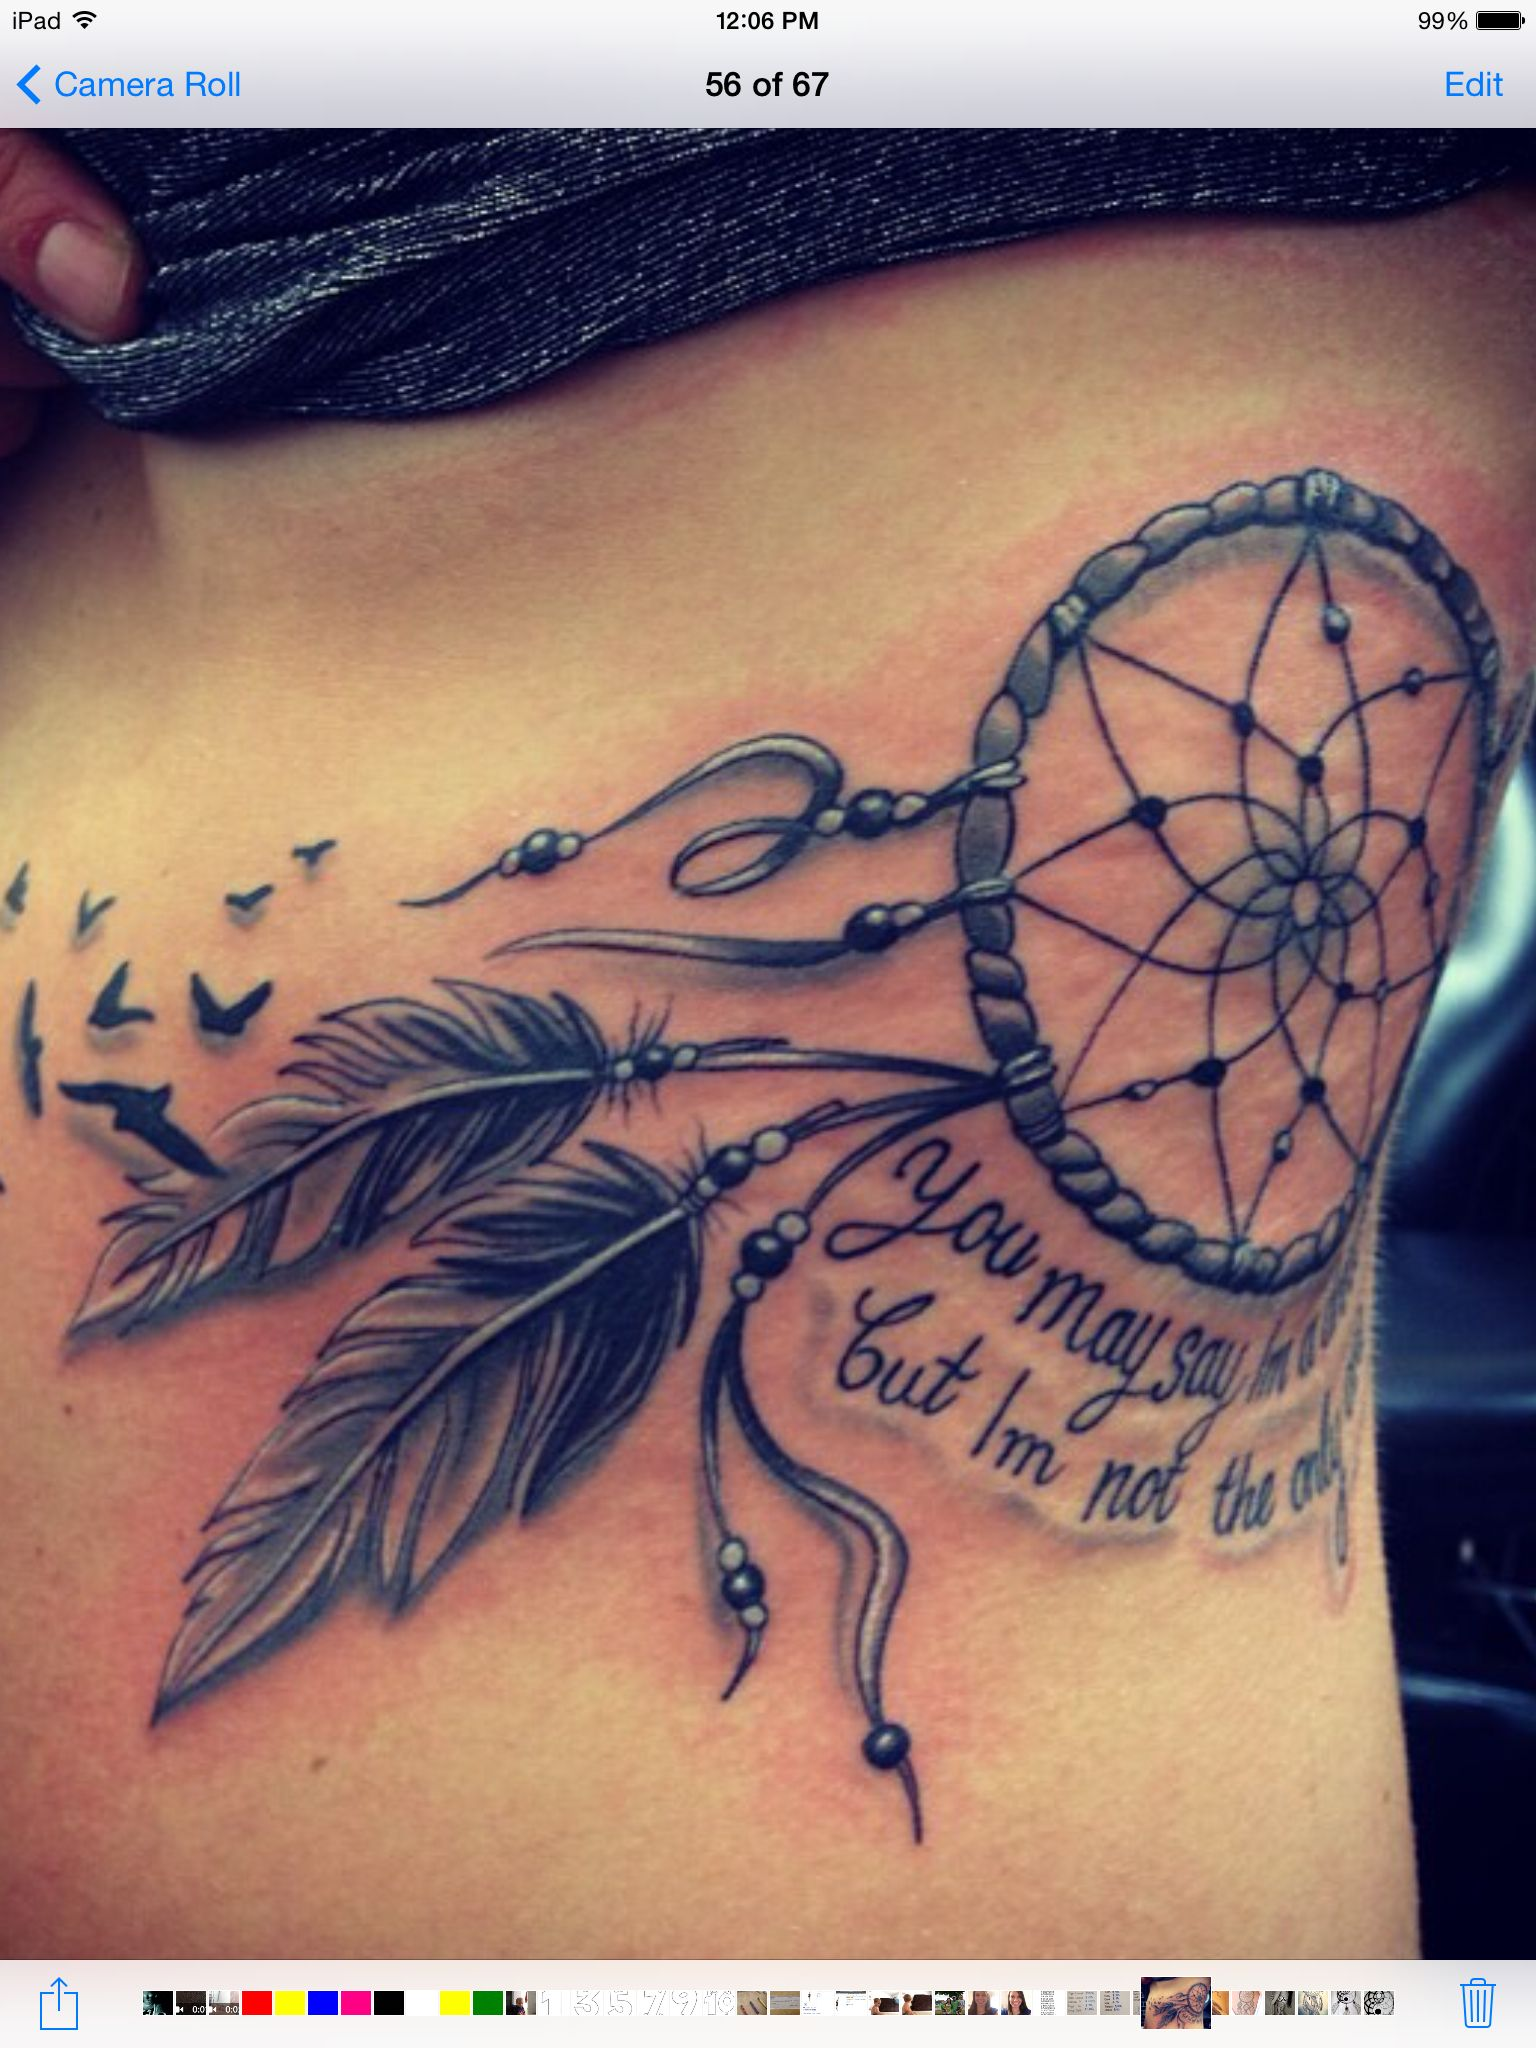 Dream Catcher Tattoo With Quote Tattoos Tattoos Dream Catcher